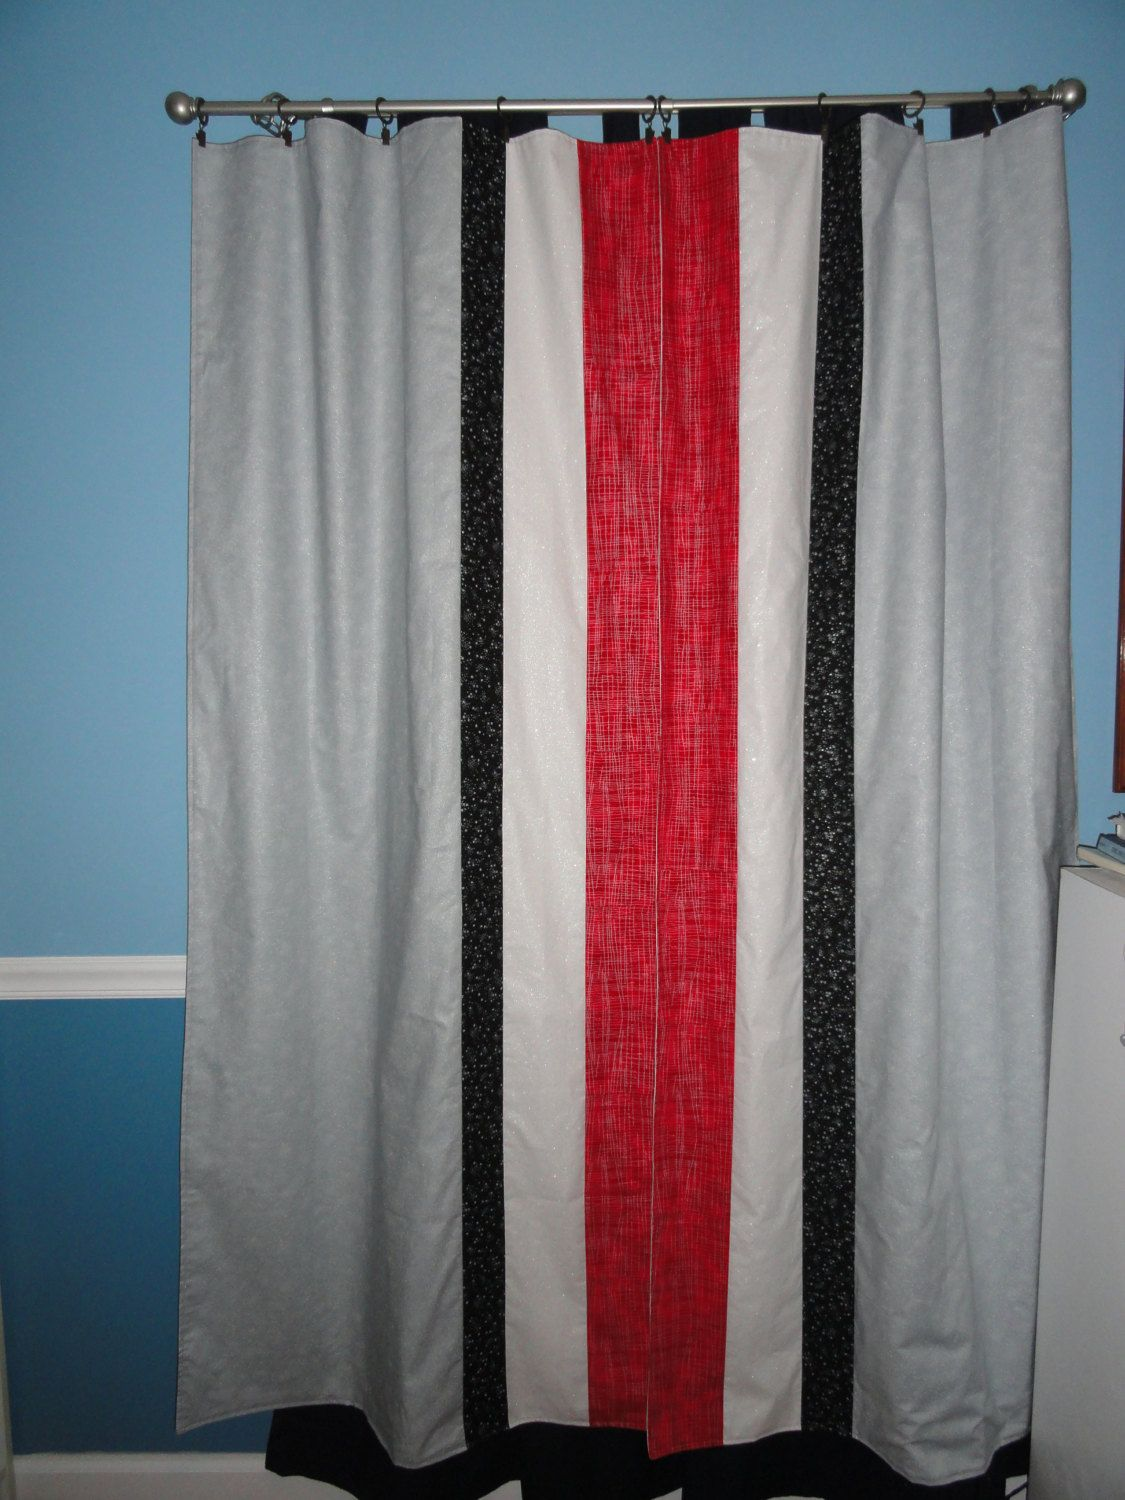 I Could Make These Lisa Ohio State Curtains Stripes Of Pride Curtains 150 00 Via Etsy Ohio State Rooms Ohio State Bedroom Ohio State Decor